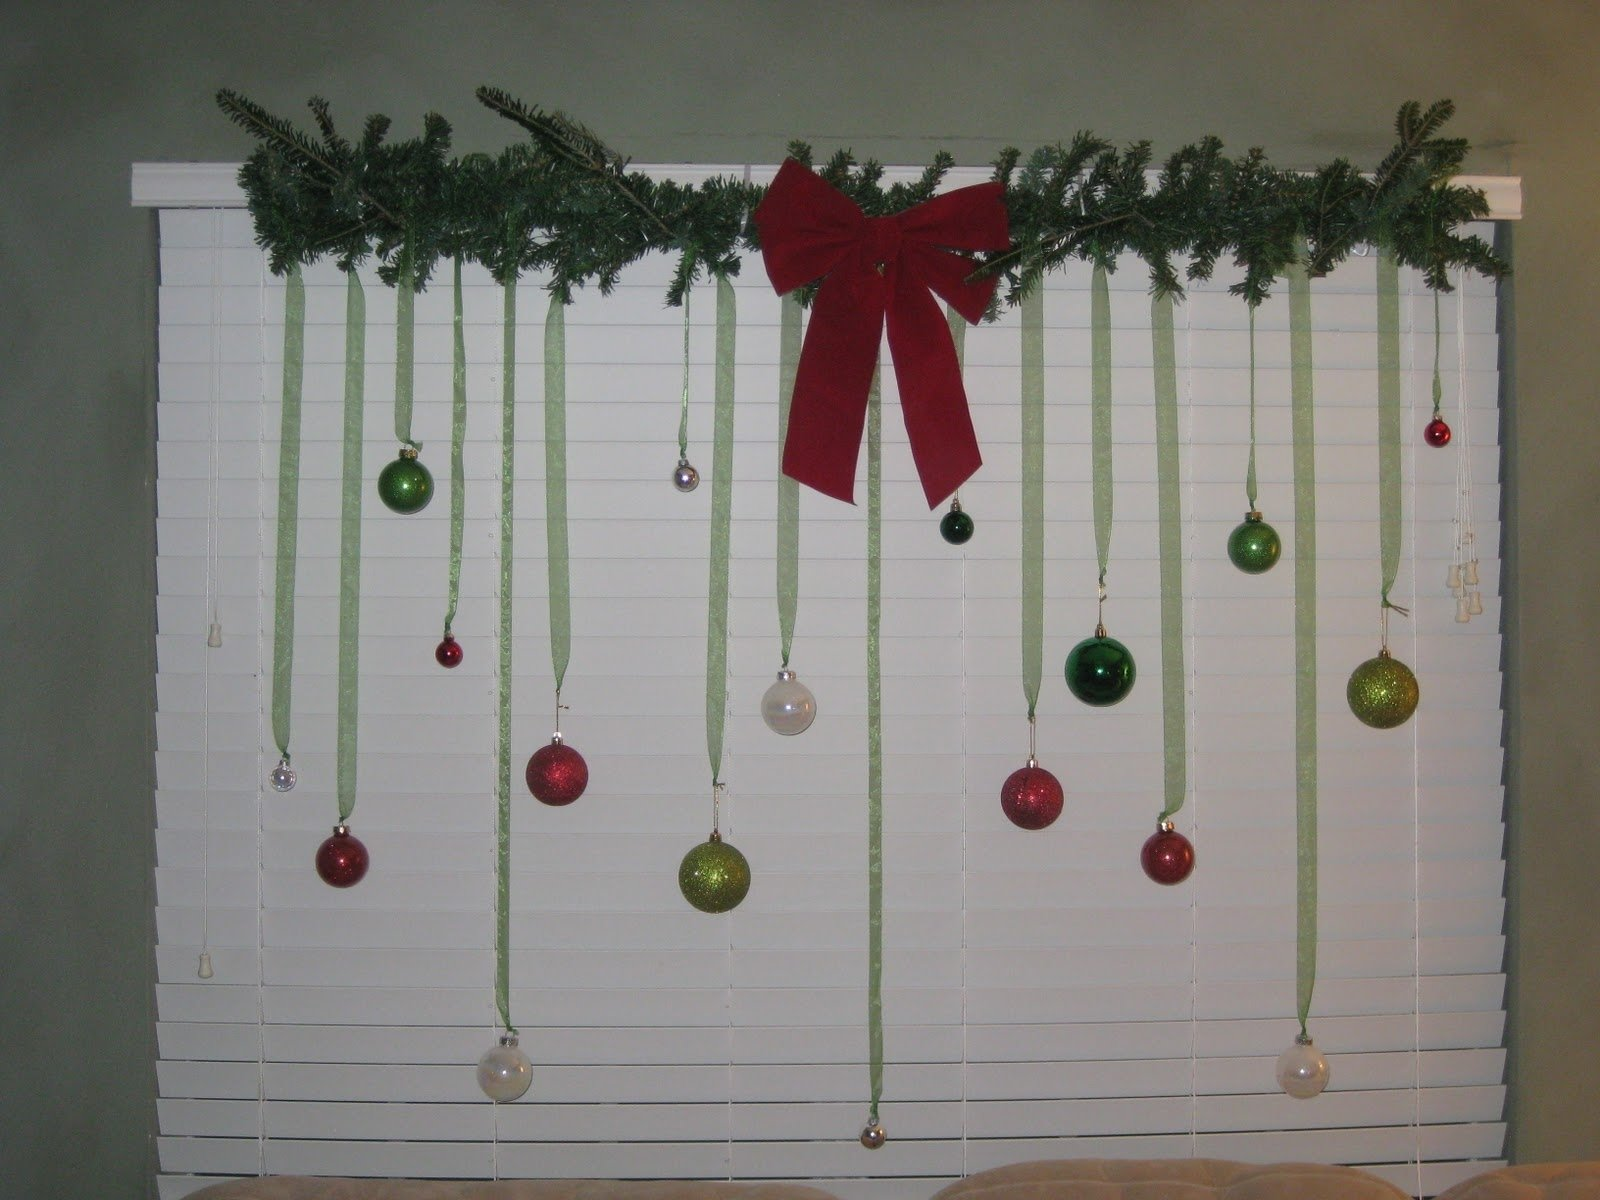 10 Fabulous Christmas Decorating Ideas For Windows great christmas decor for windows on decorations with bay window 2020